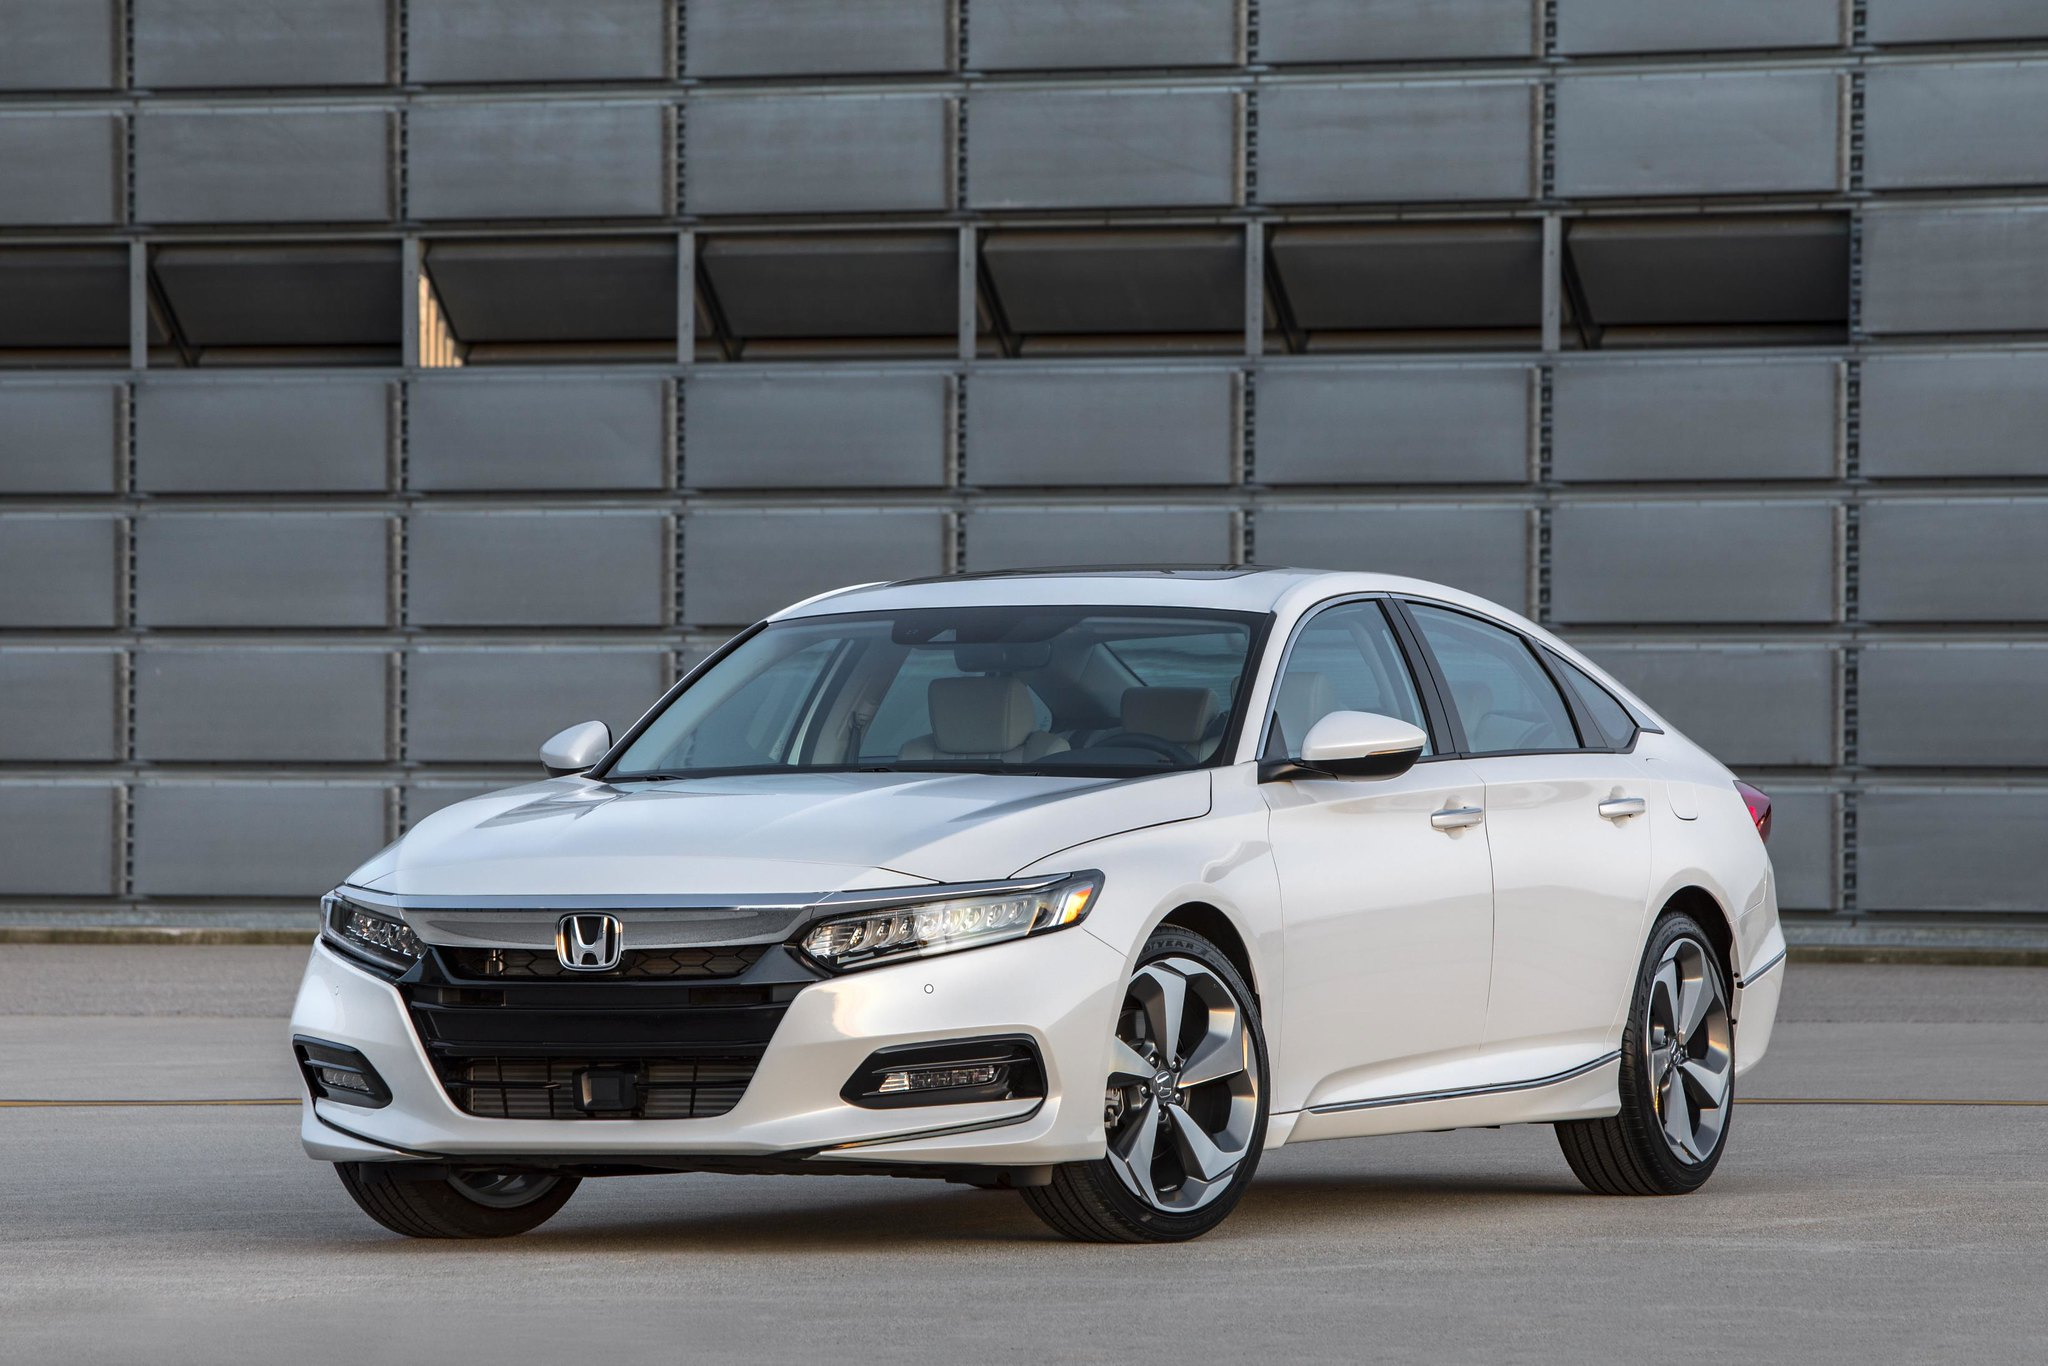 This is the 2018 Honda Accord